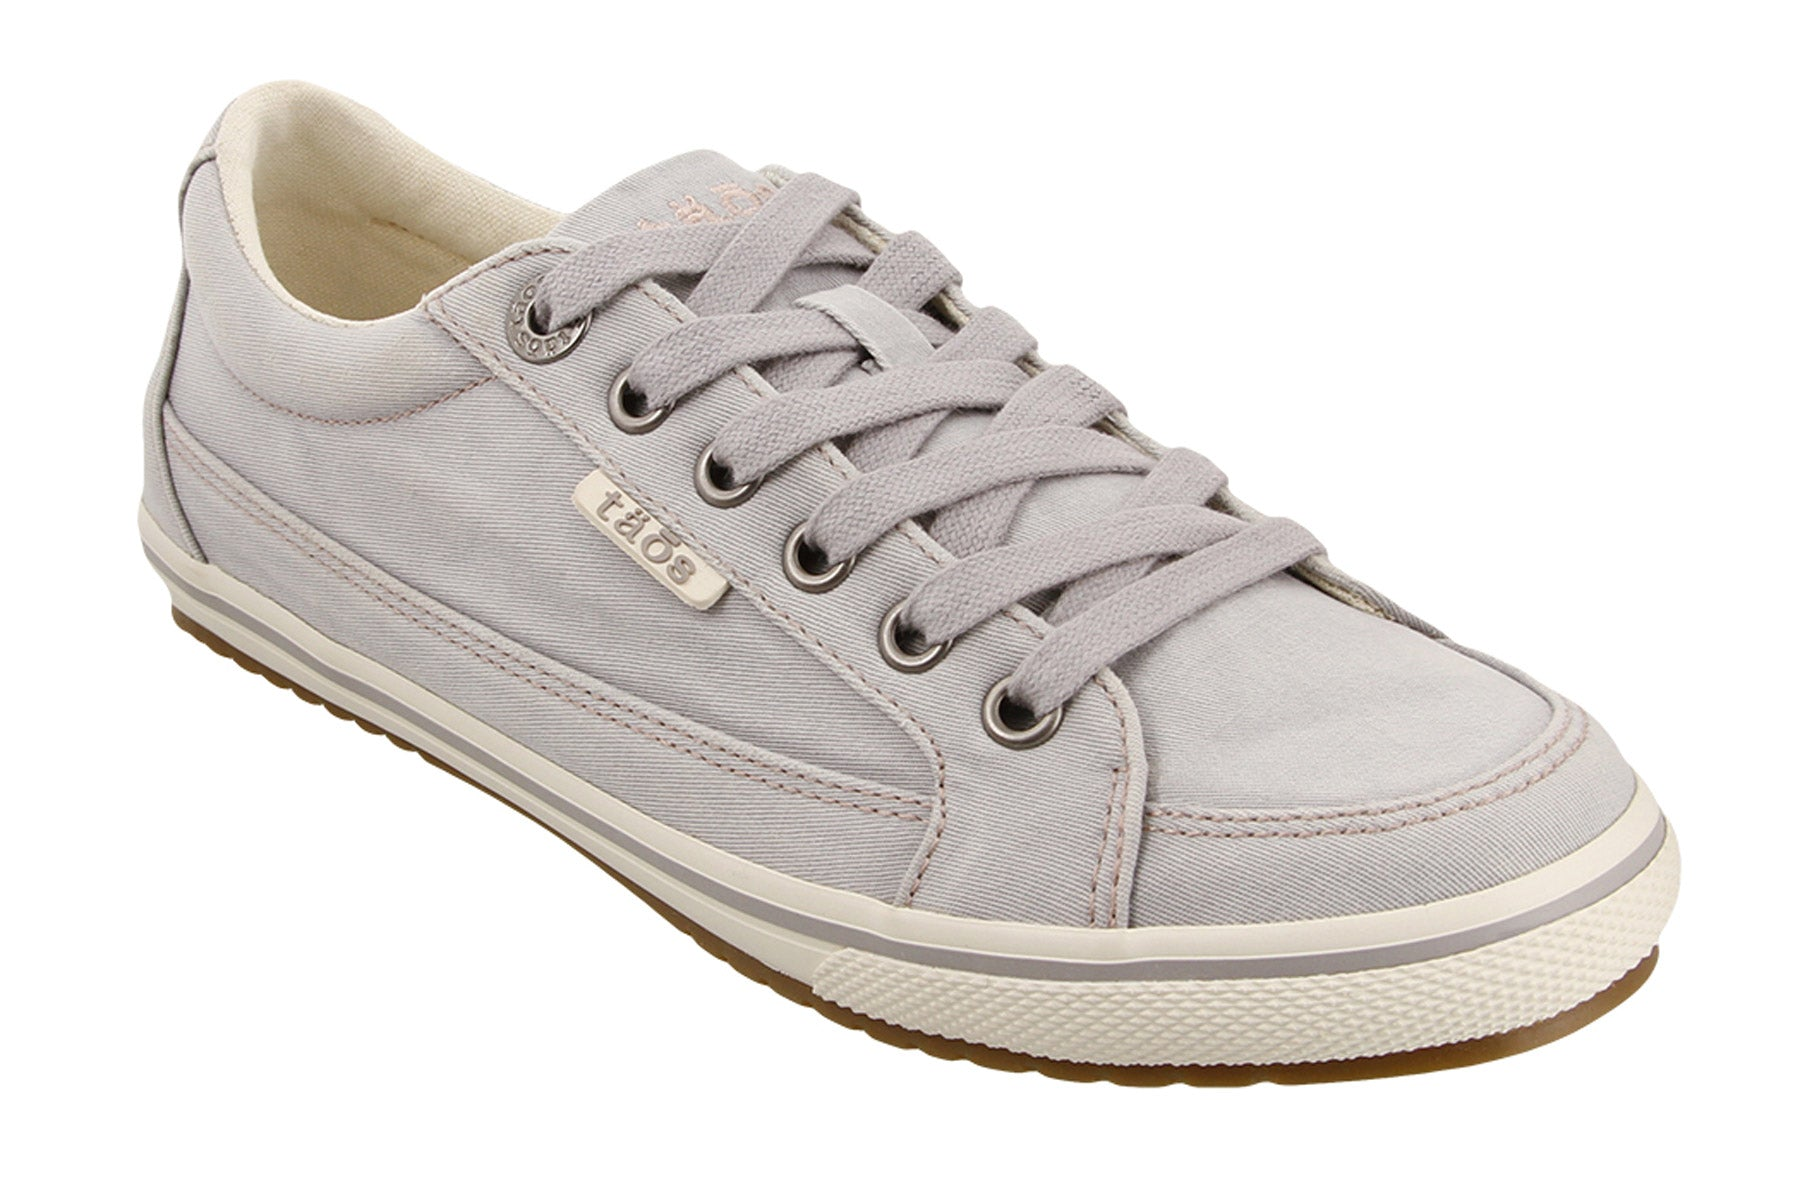 Taos Footwear Womens Moc Star Light Grey Distressed Sneaker 10.5 M US